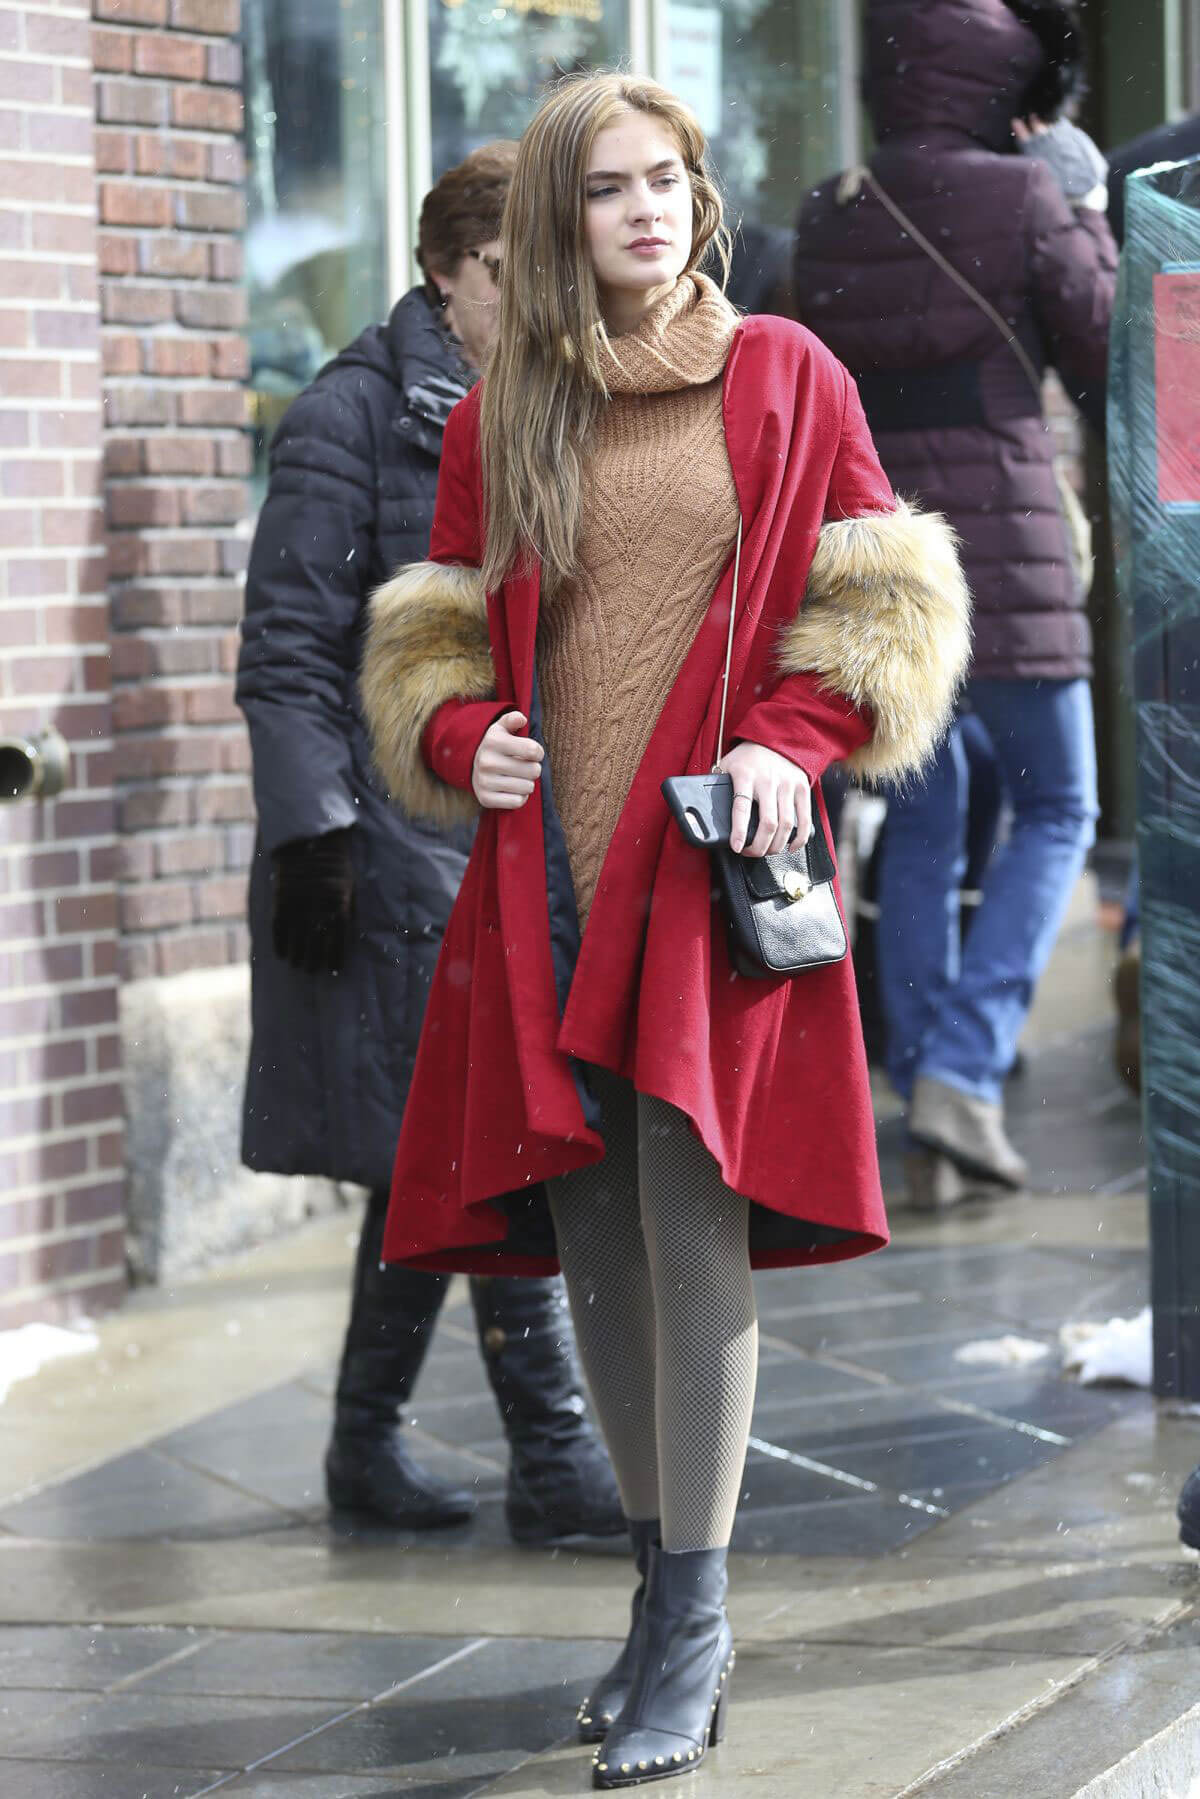 Brighton Sharbino Out and About in Park City